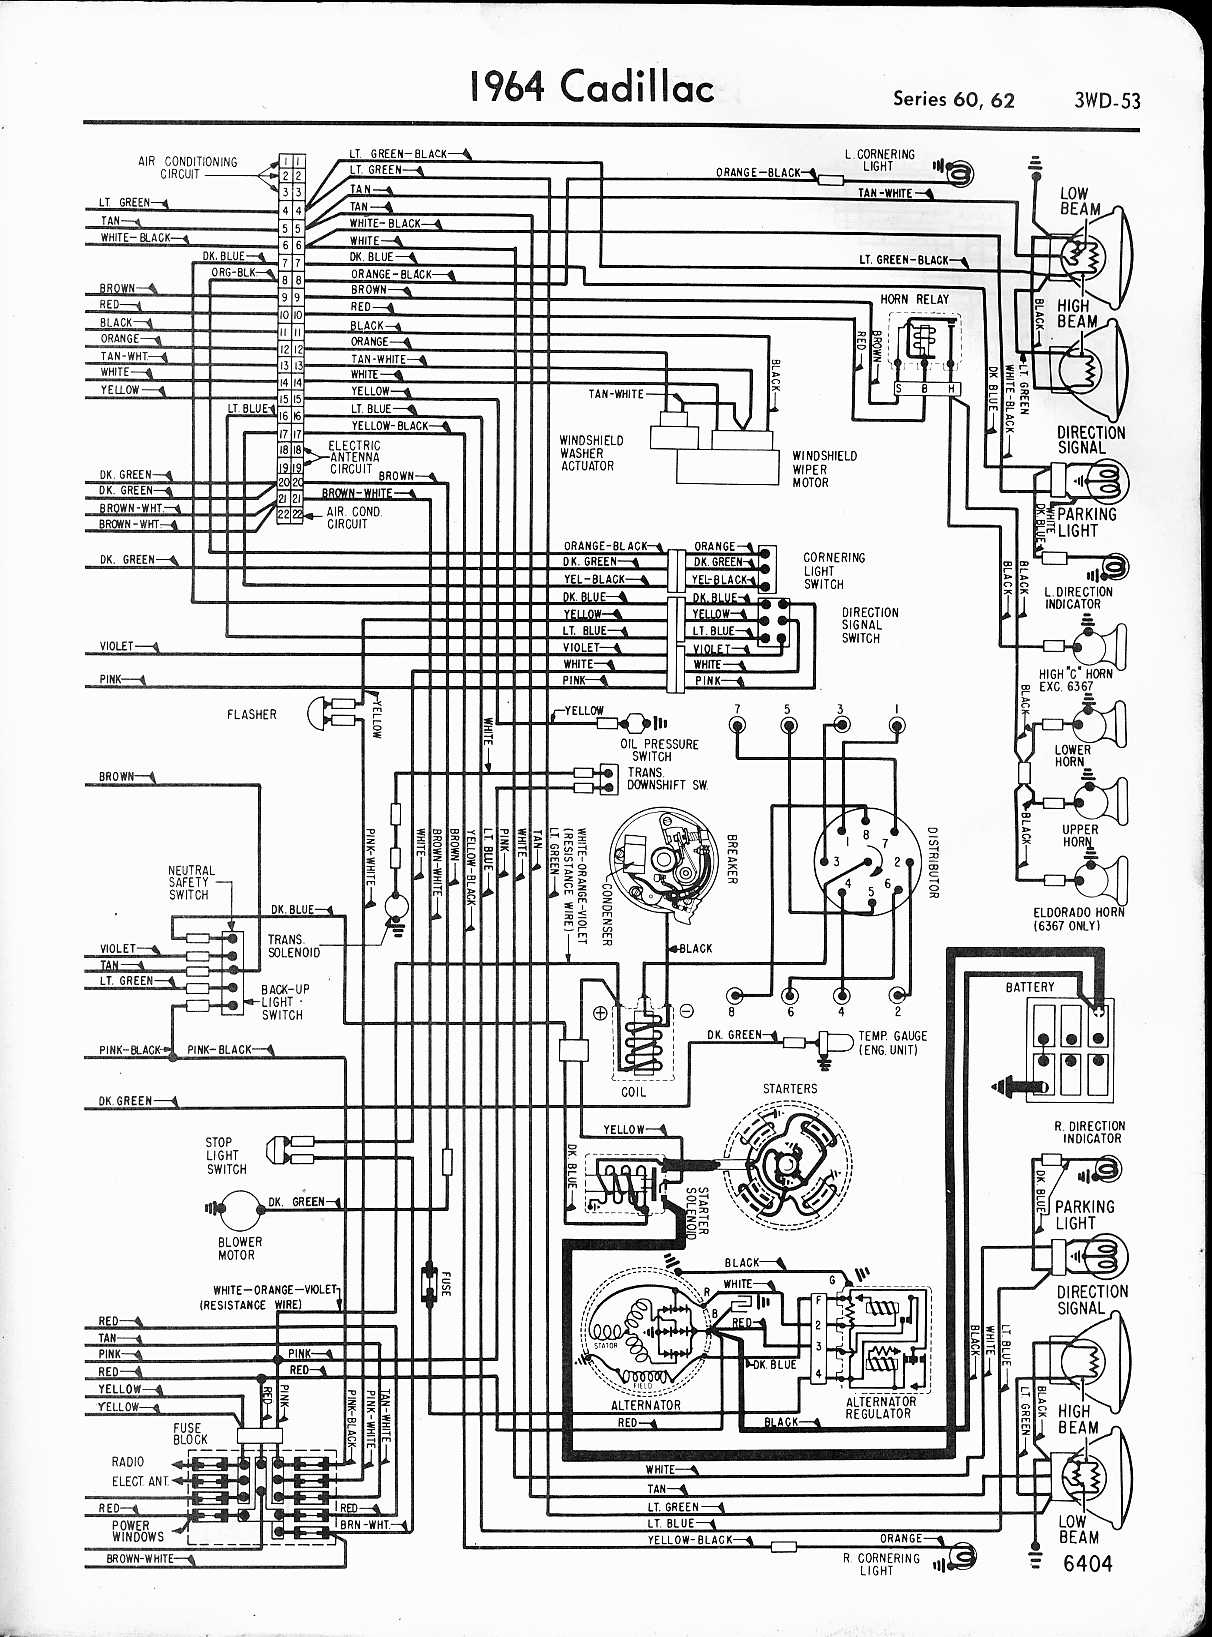 Cadillac Wiring Diagrams: 1957-1965 on cadillac fuse box diagram, 1963 cadillac vacuum diagrams, cadillac wiring parts, cadillac ac diagram, cadillac deville starter wiring, cadillac troubleshooting, 2000 cadillac eldorado electrical diagrams, cadillac manual transmission,